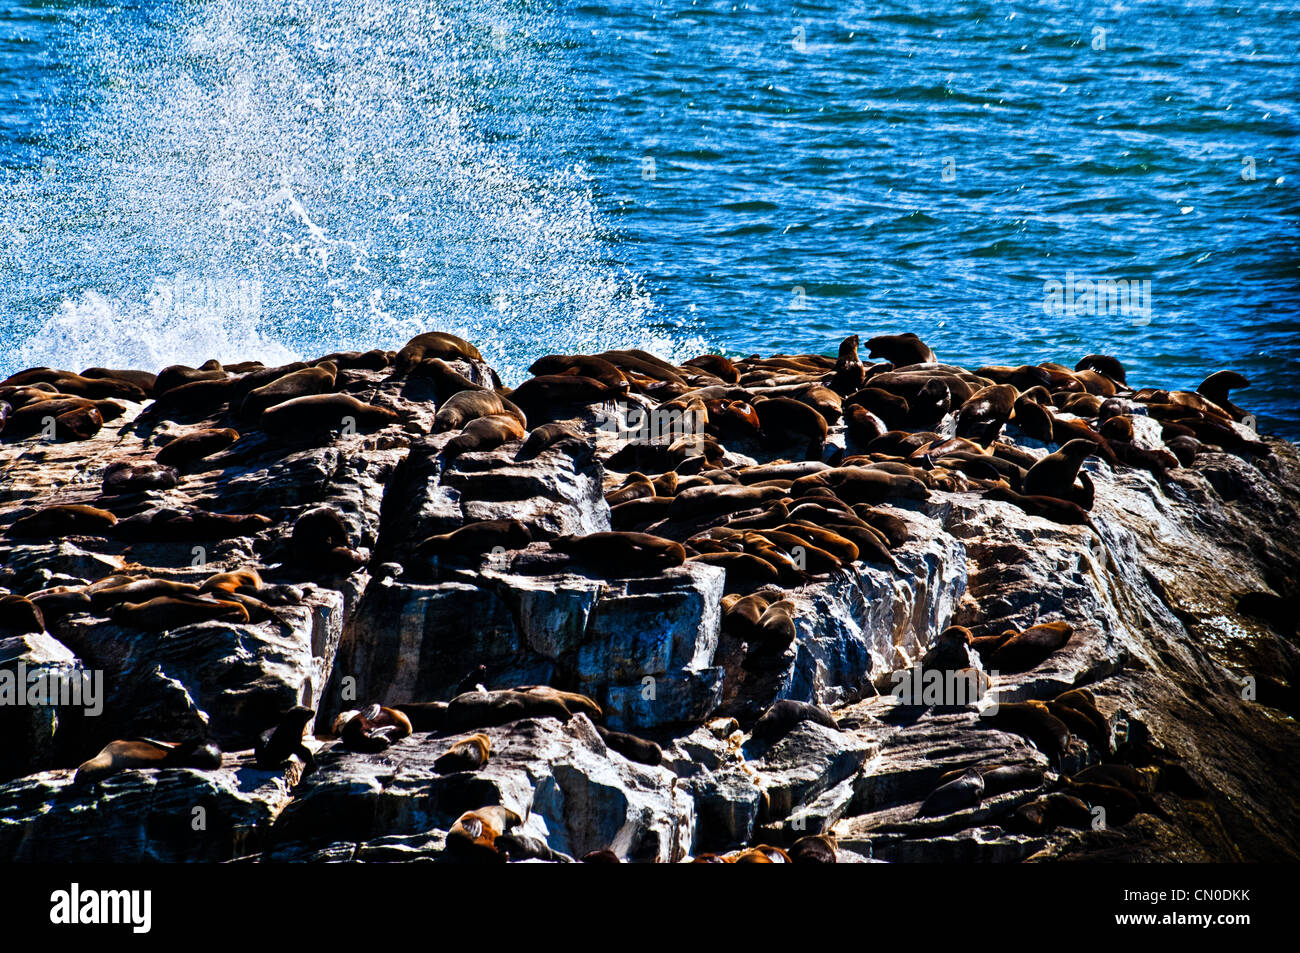 A colony of Cape Fur Seals, Arctocephalus pusillus, on an island off Diaz Point, near Luderitz, Namibia, Africa - Stock Image